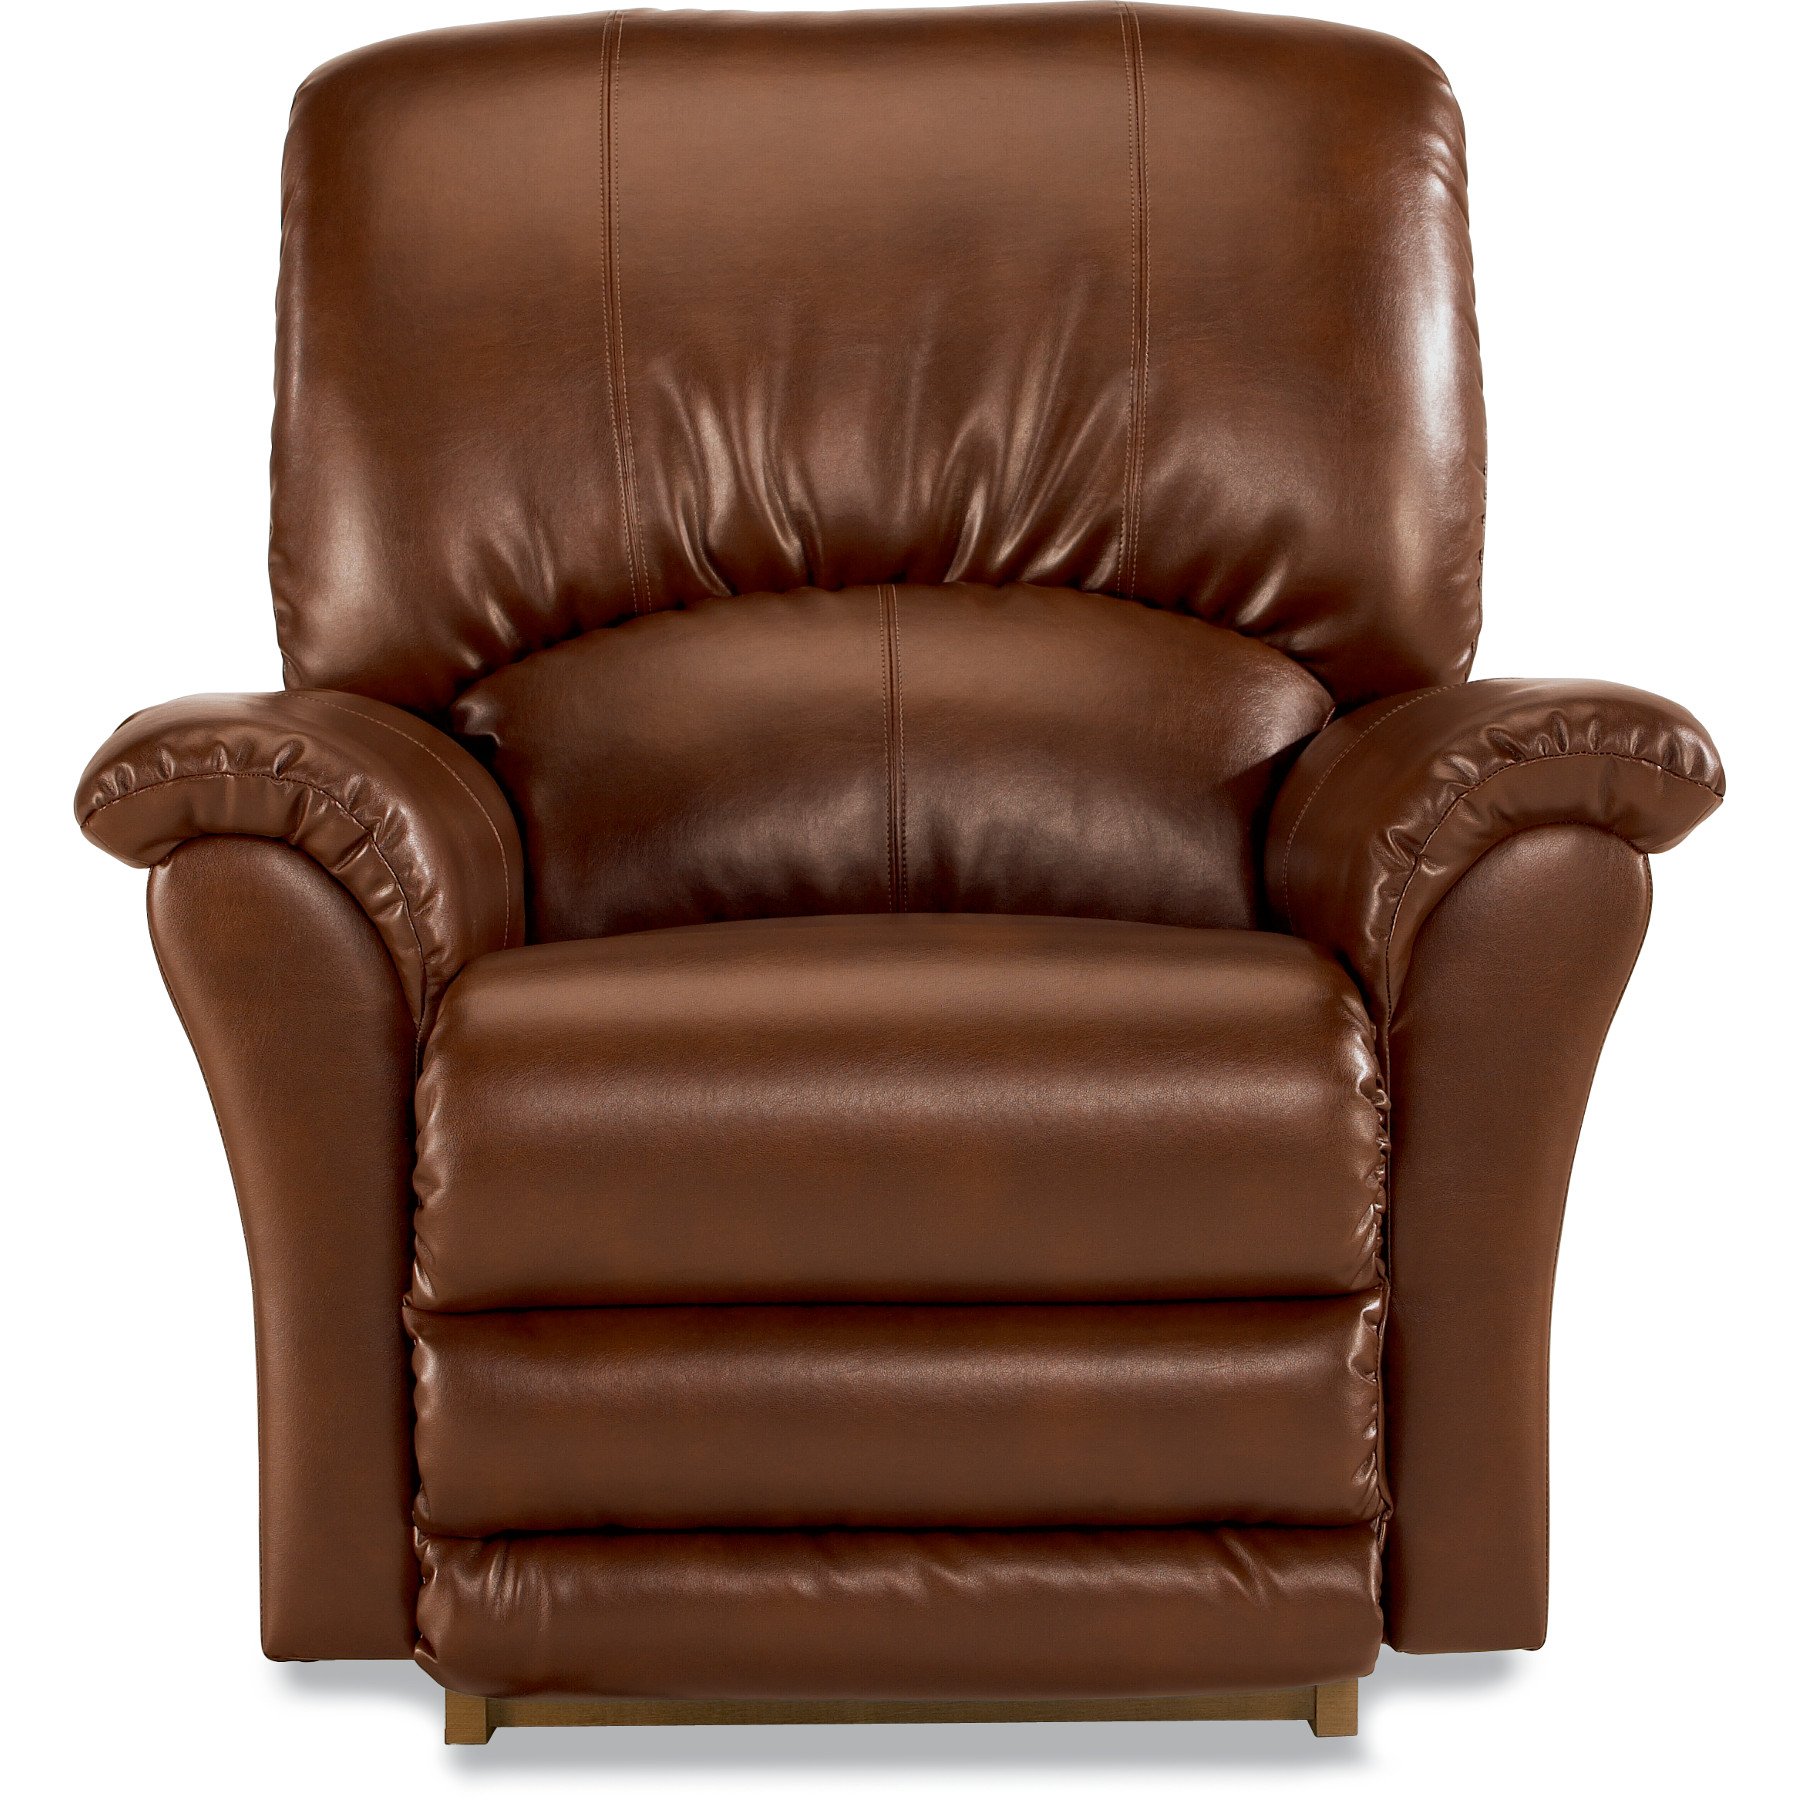 La-Z-Boy CANTINA POWER ROCKER RECLINER SADDLE